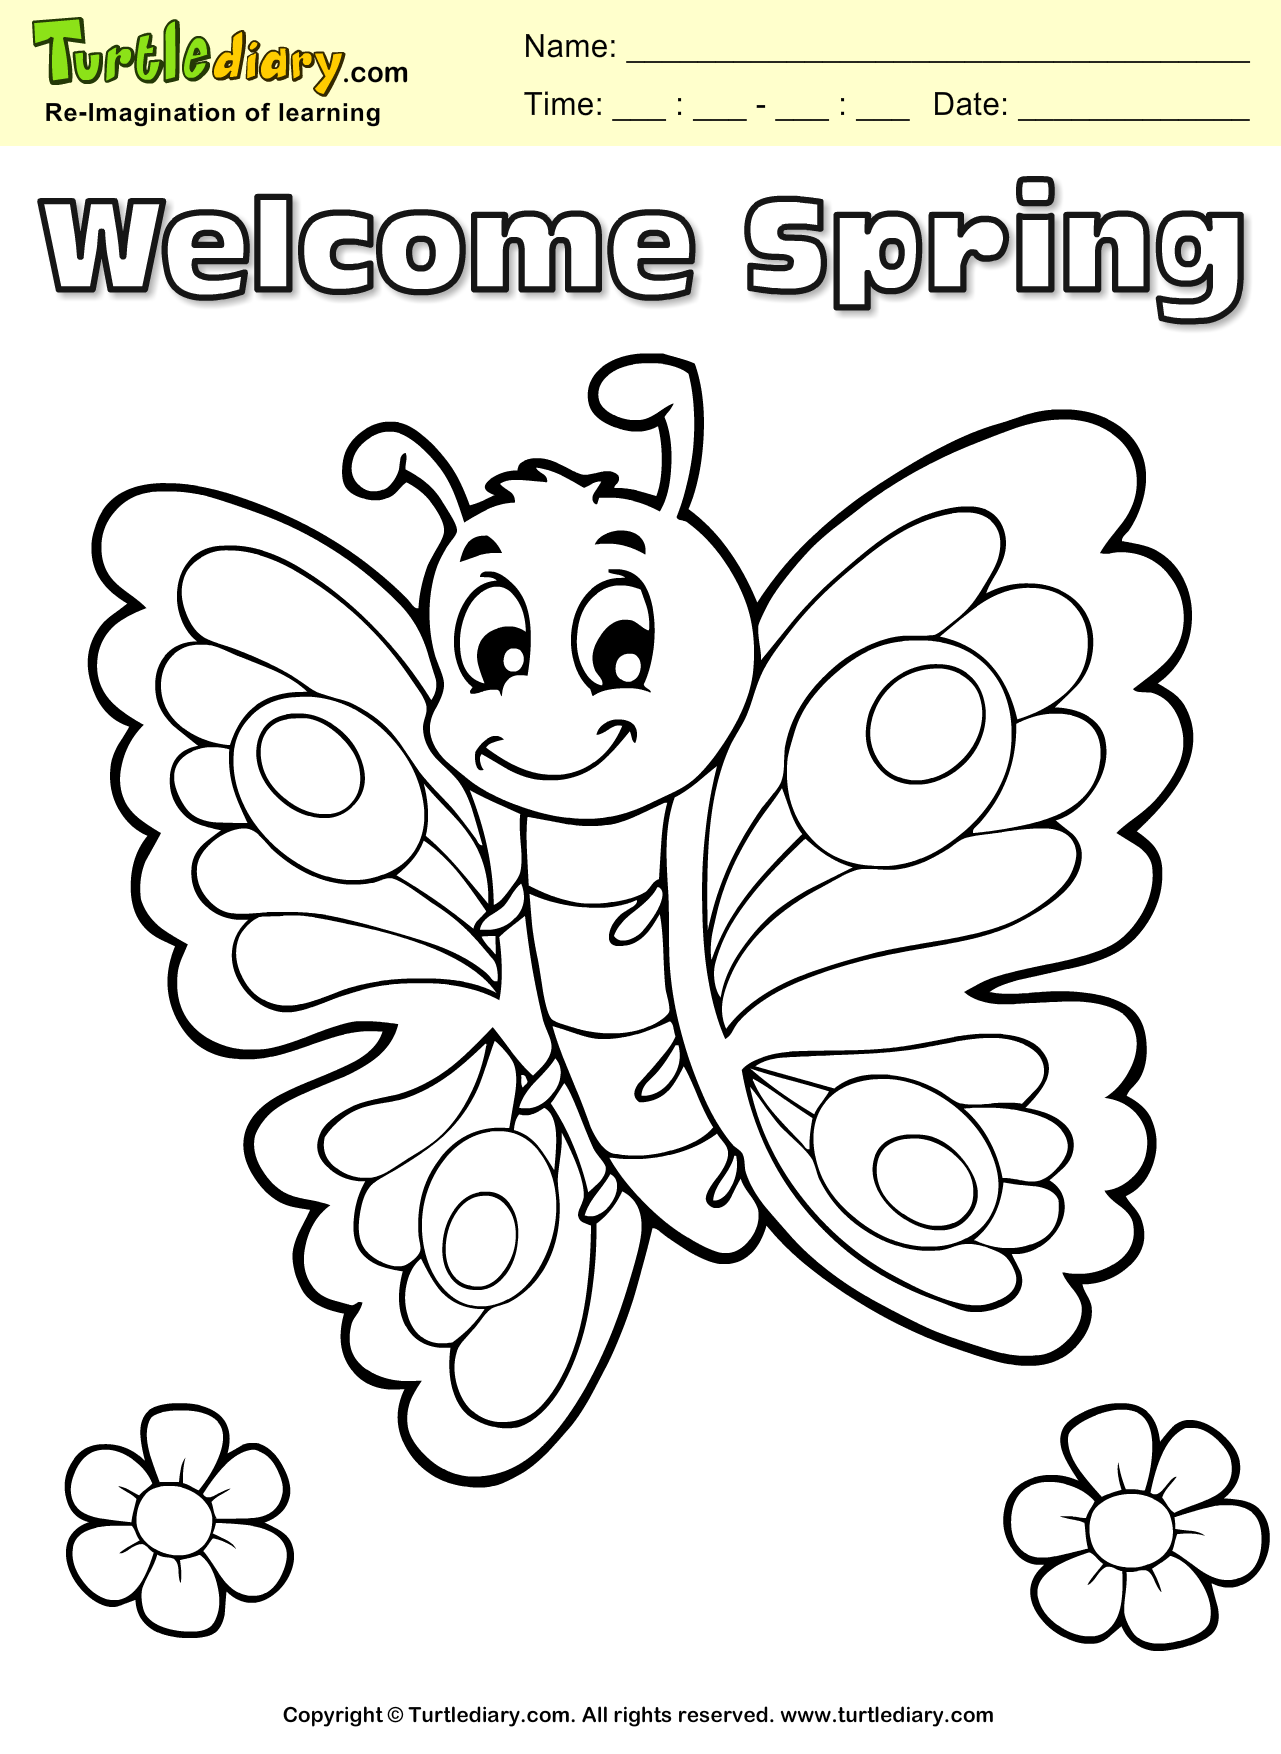 Welcome Spring Butterfly Coloring Page Kids Crafts Coloring